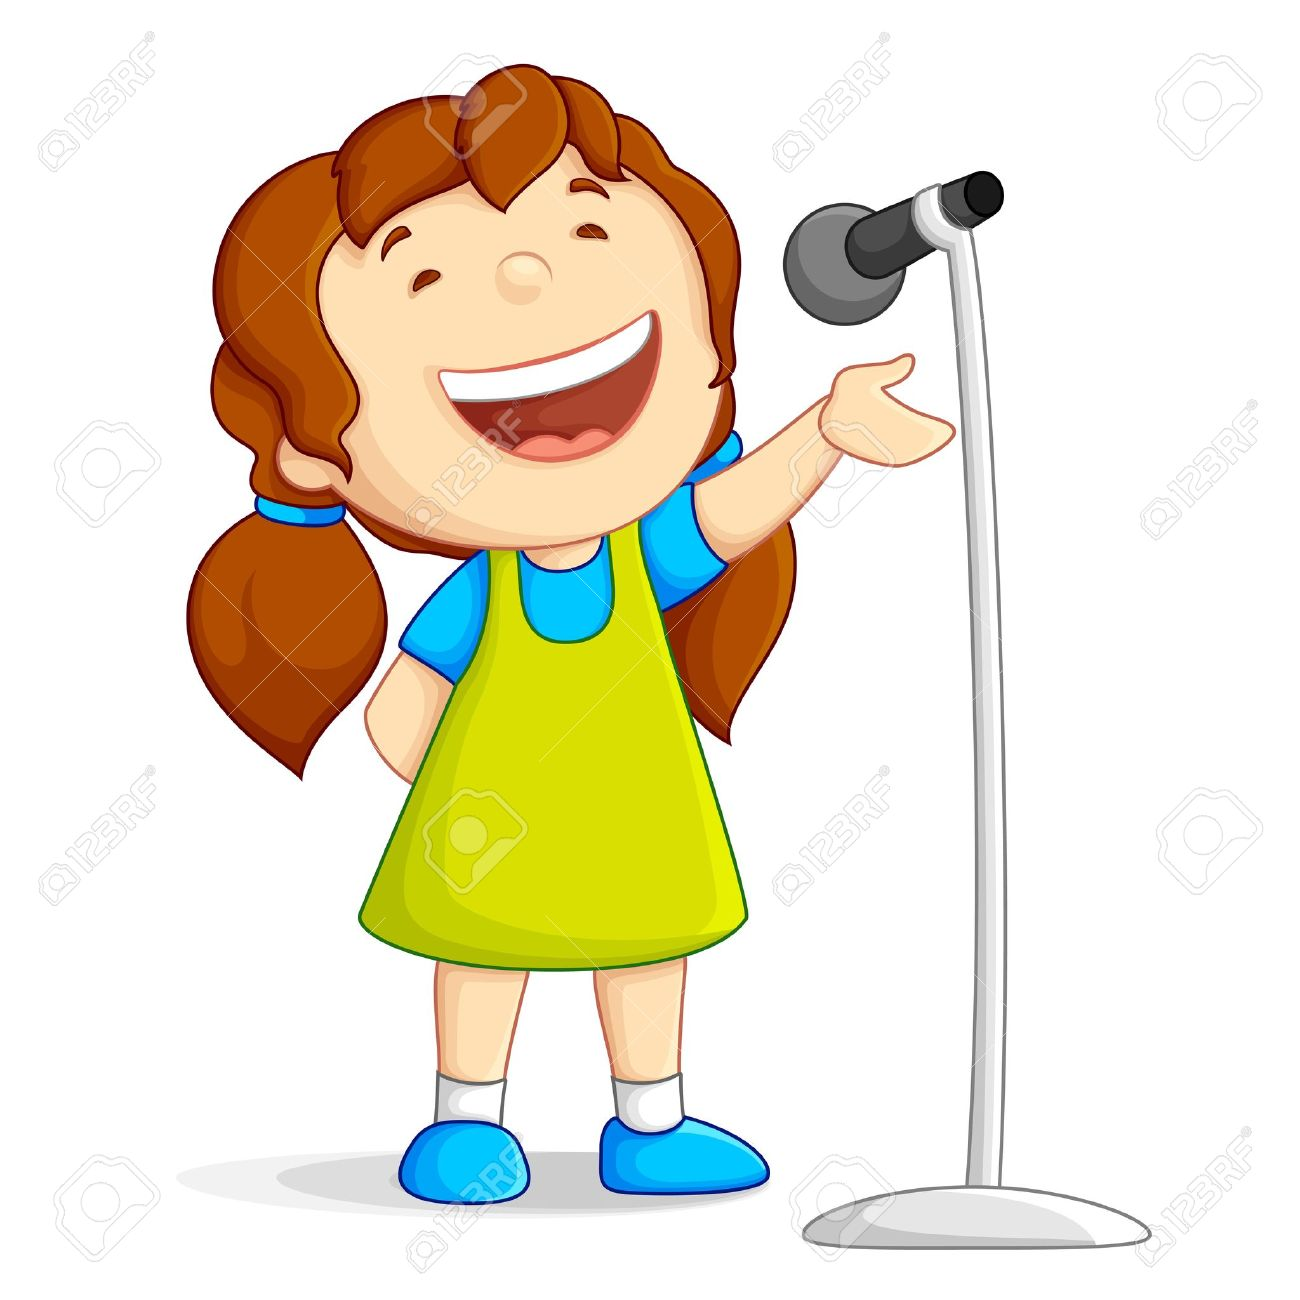 singing girl royalty free cliparts vectors and stock illustration rh 123rf com swing clip art free swing clip art free